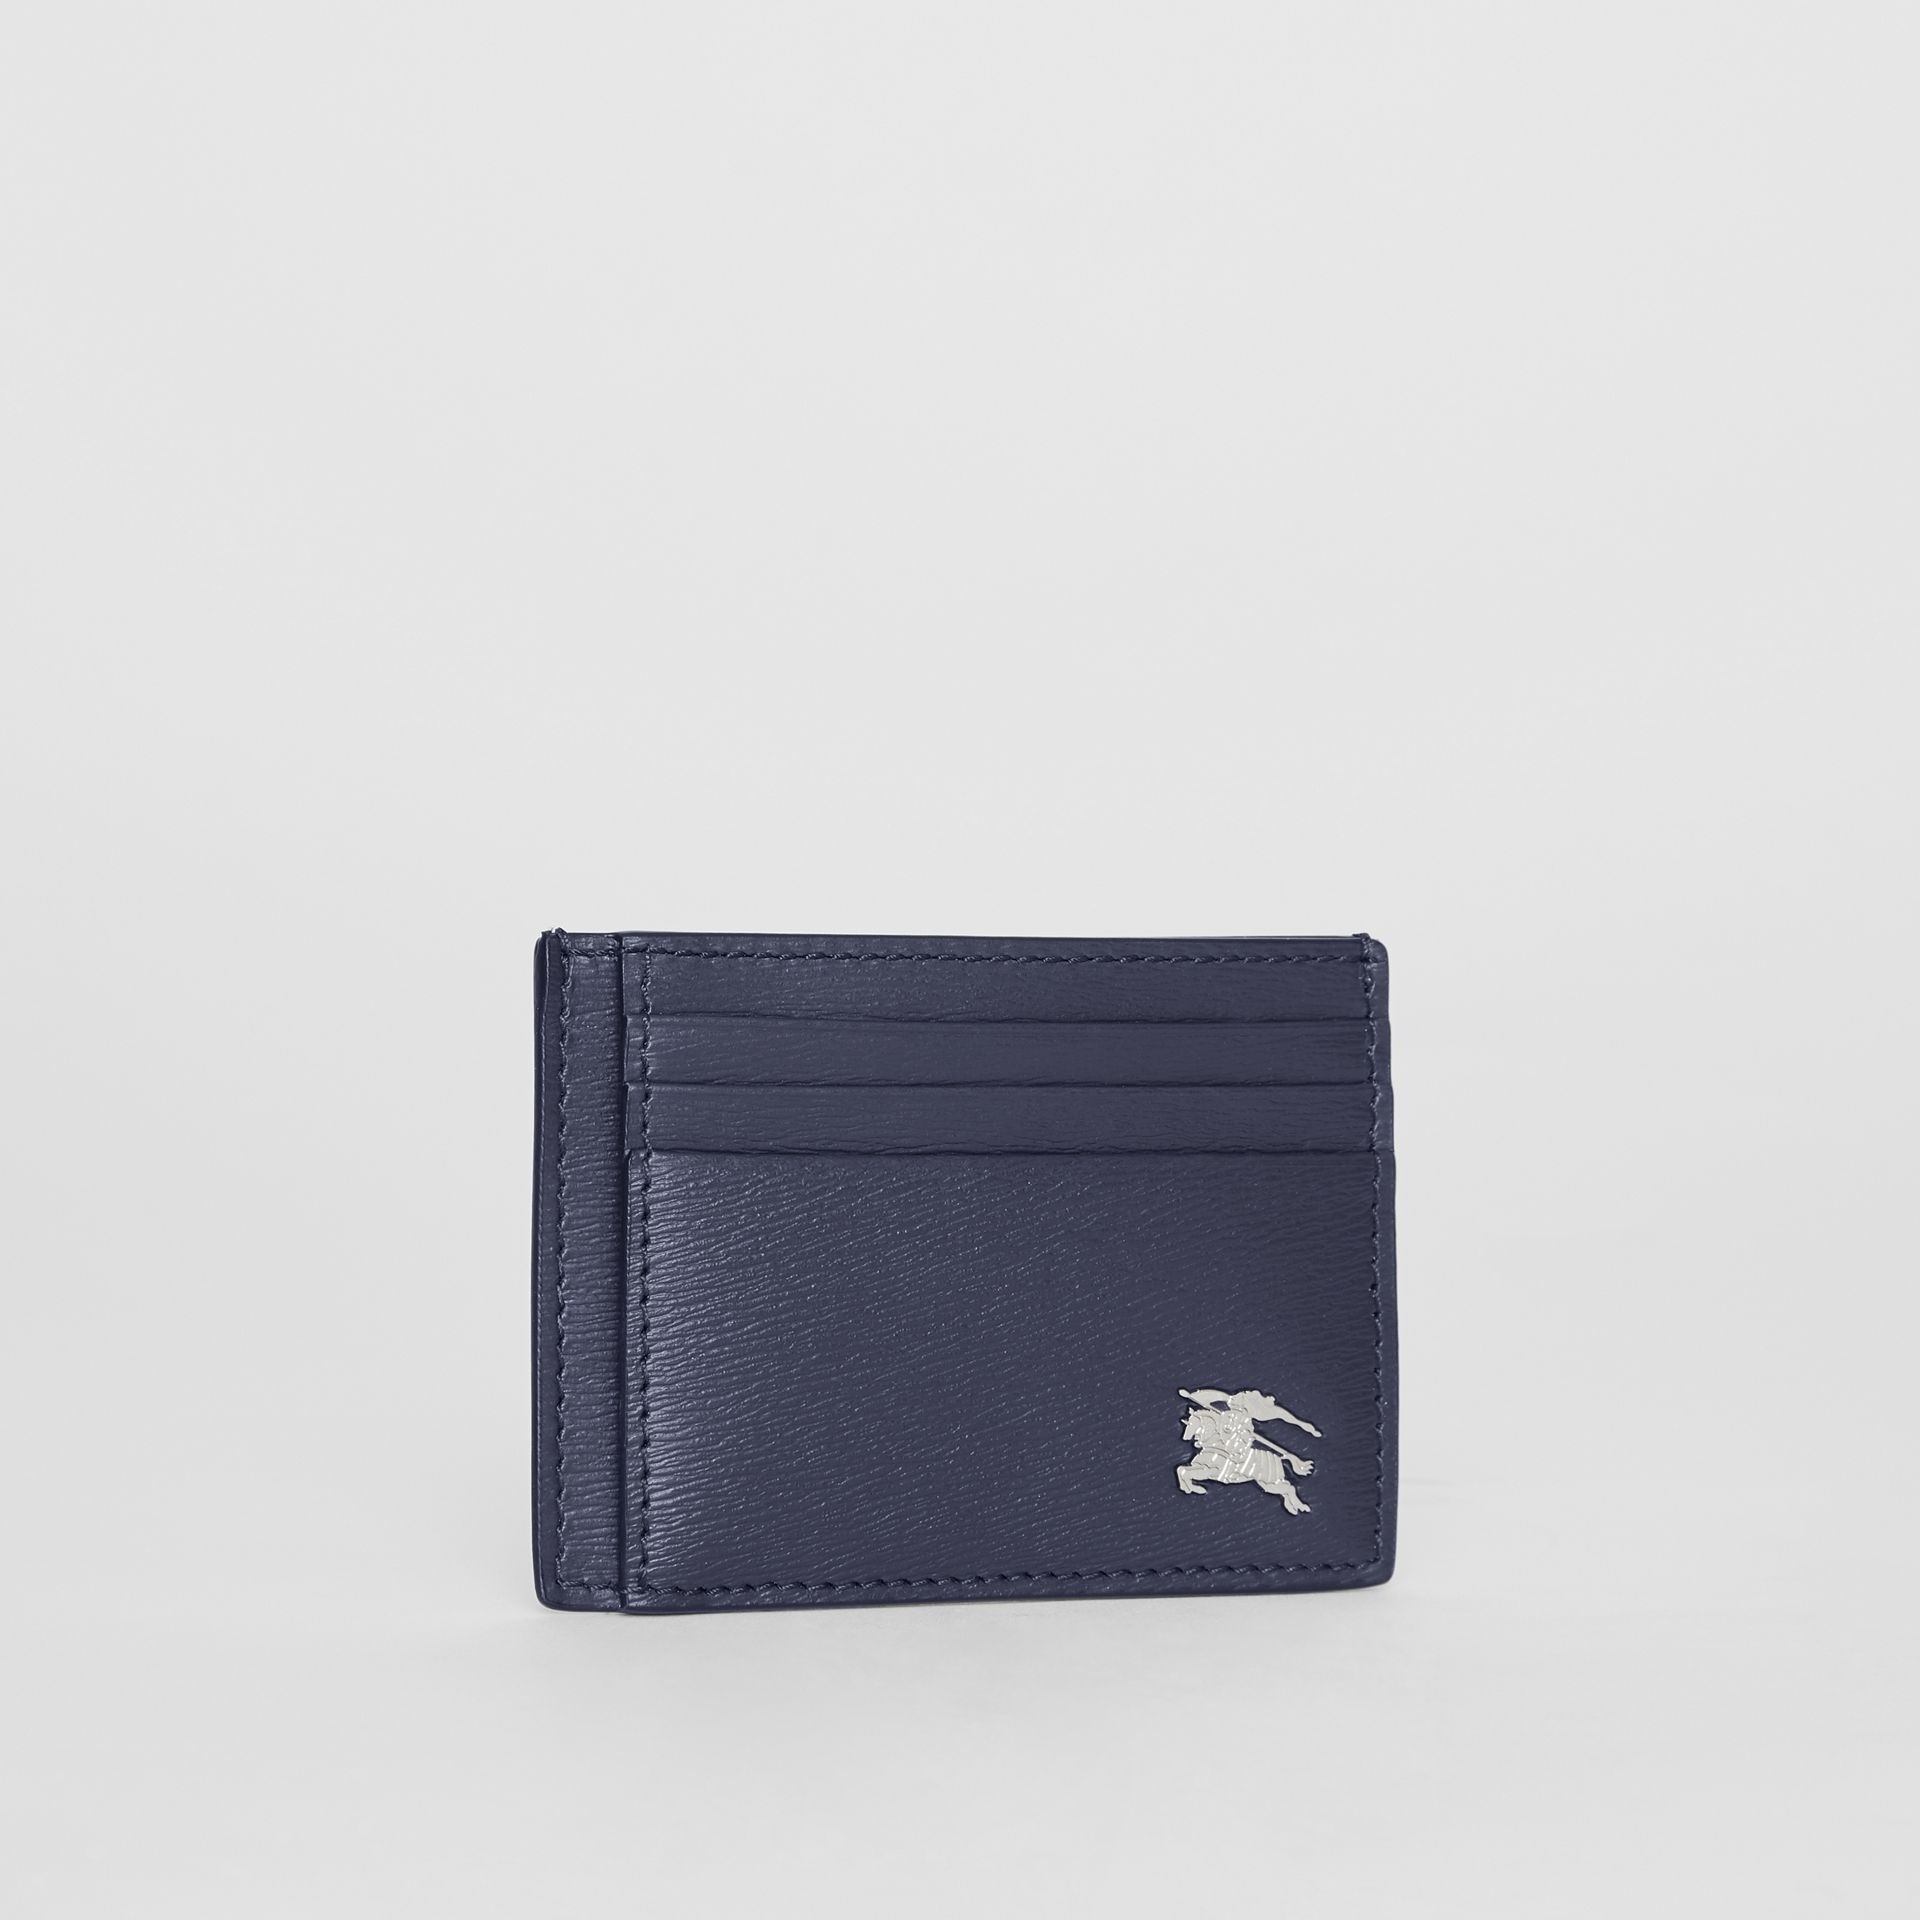 Grainy Leather Card Case in Navy - Men | Burberry - gallery image 3